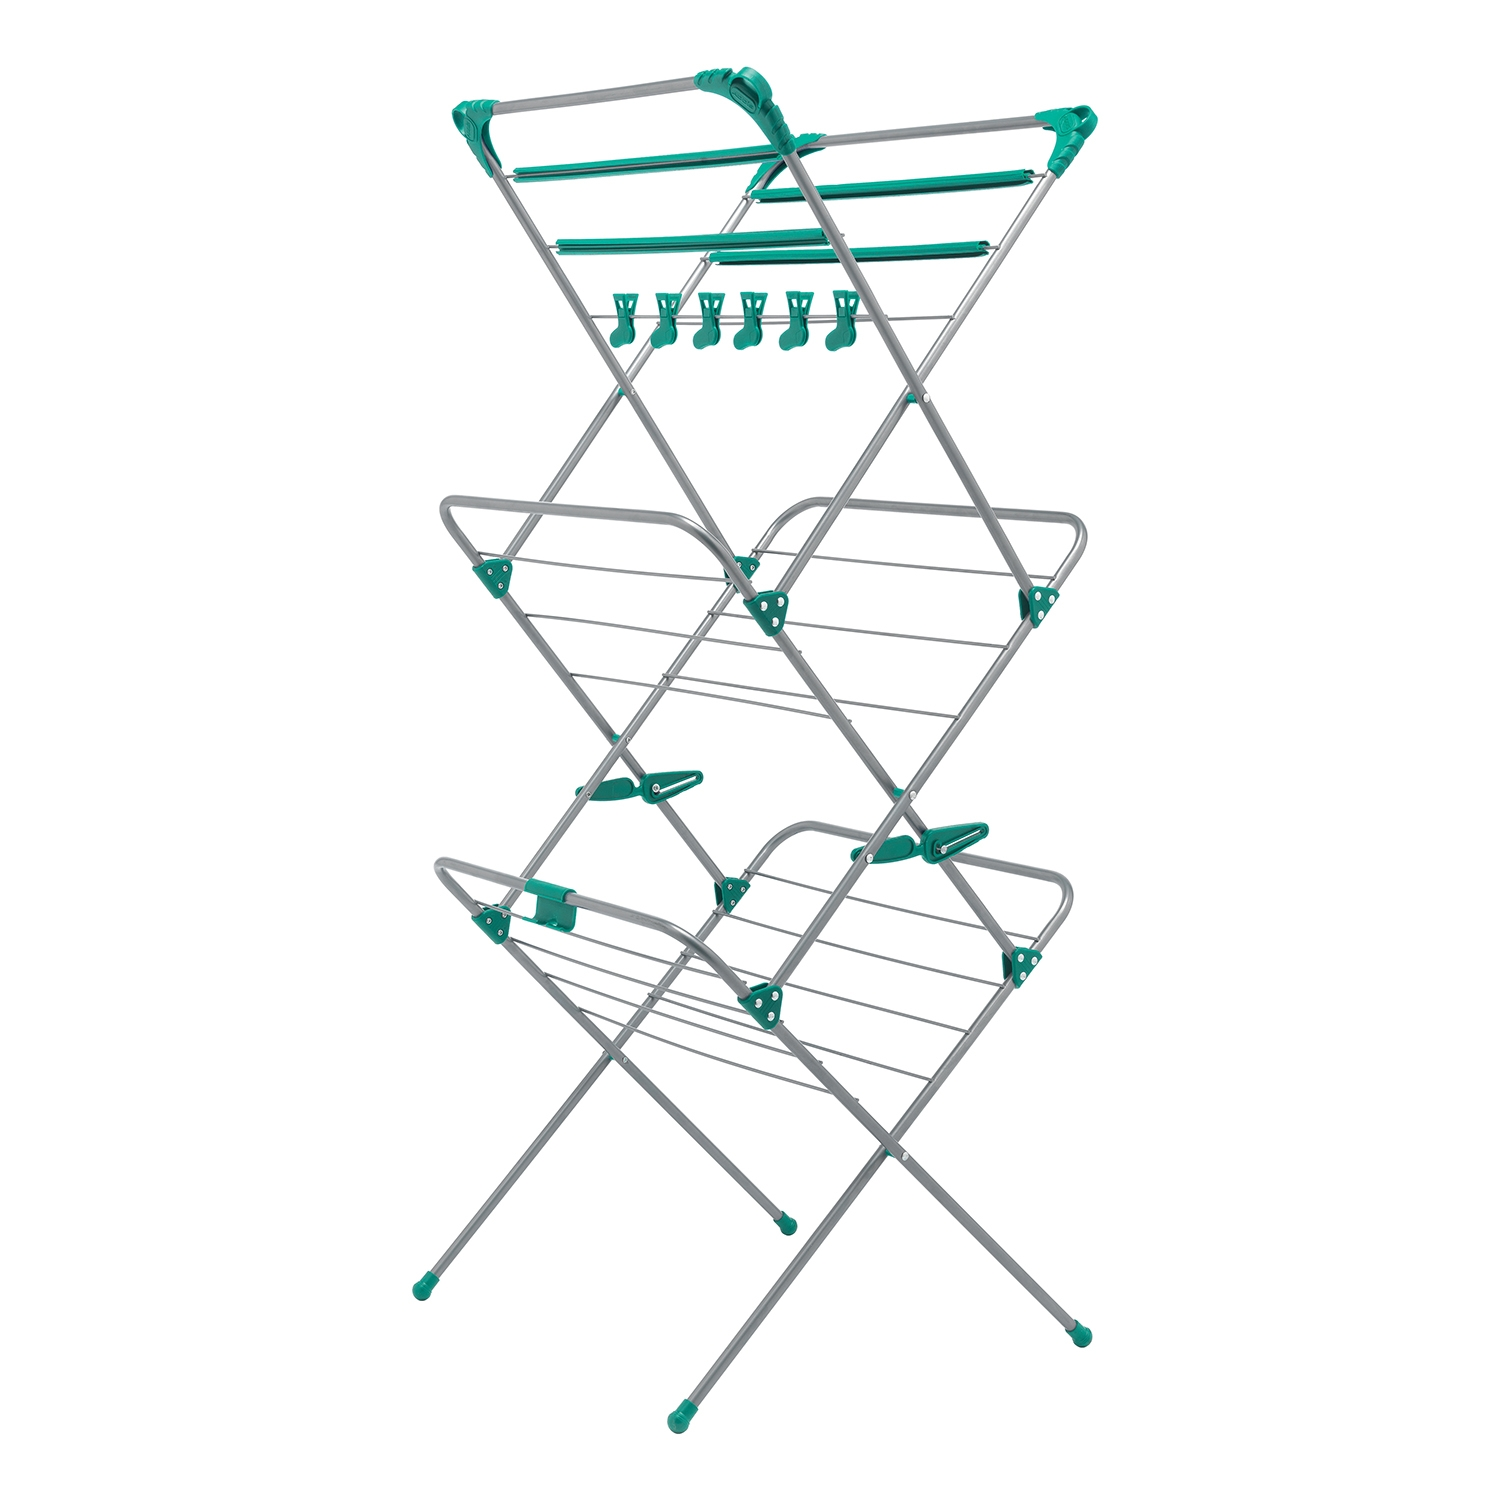 Image of Addis, Deluxe 3 Tier Airer, 15 Mtere, Blue